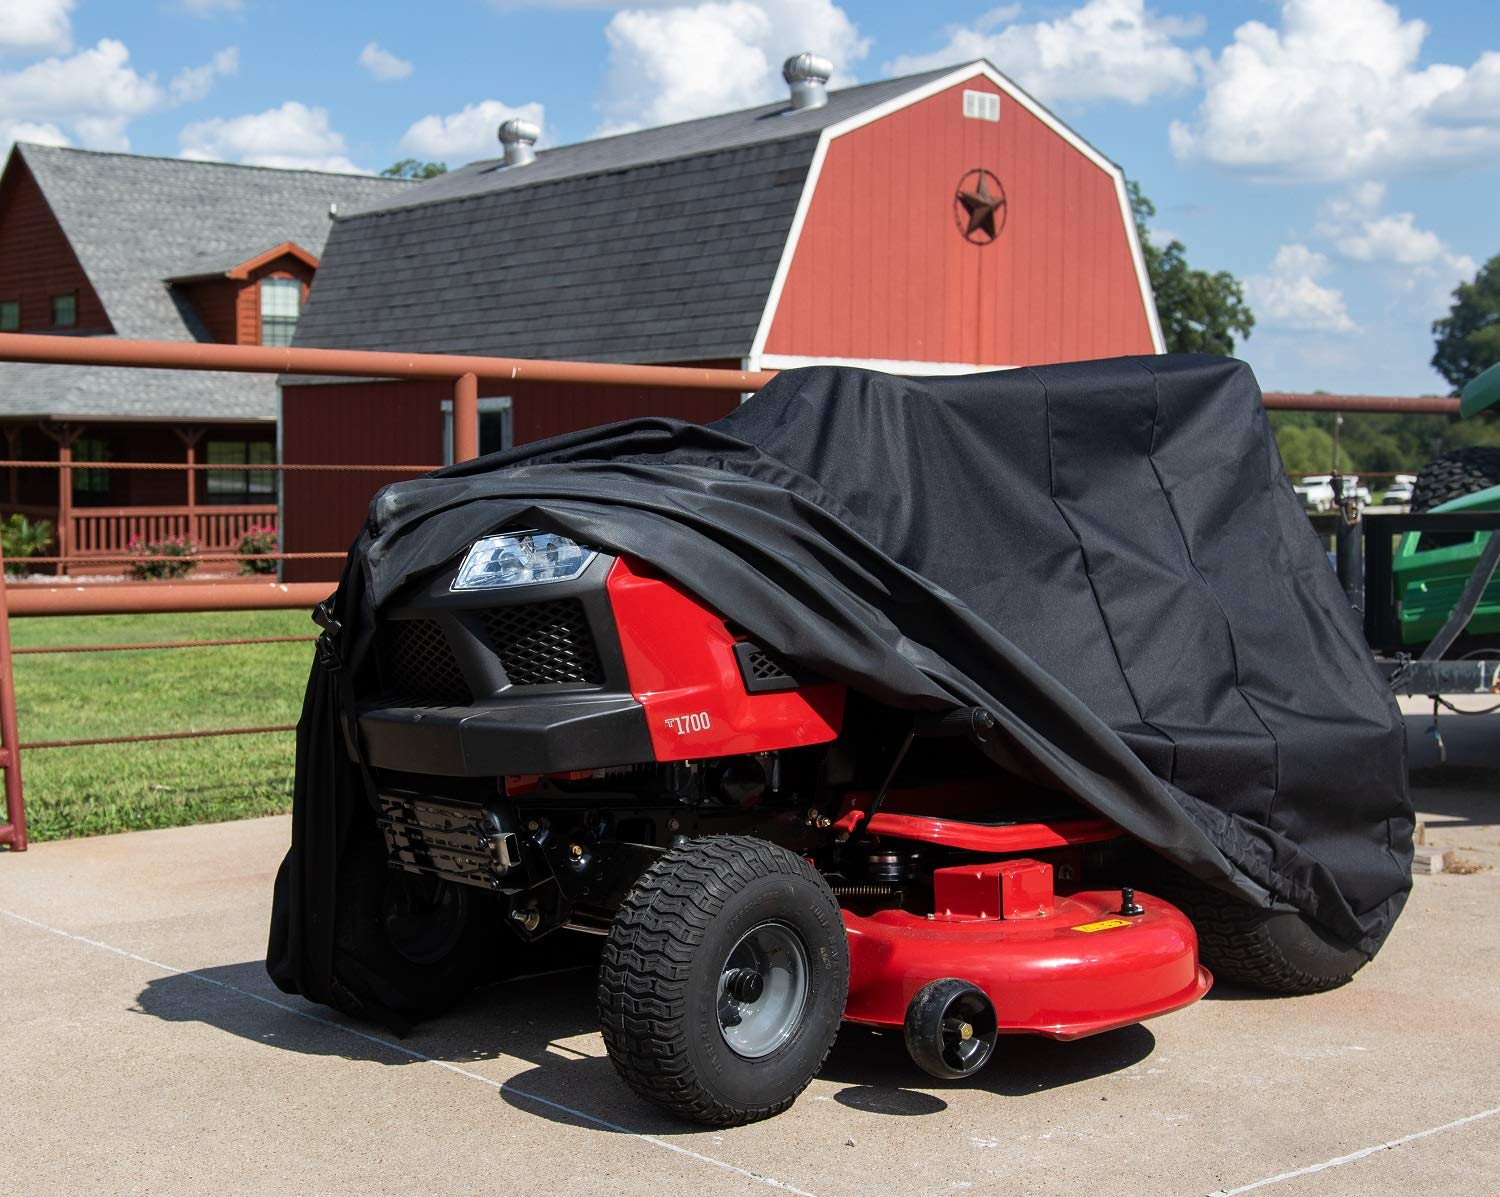 Sturdy Covers Riding Mower Defender - Durable, Weatherproof Riding Lawn Mower Cover